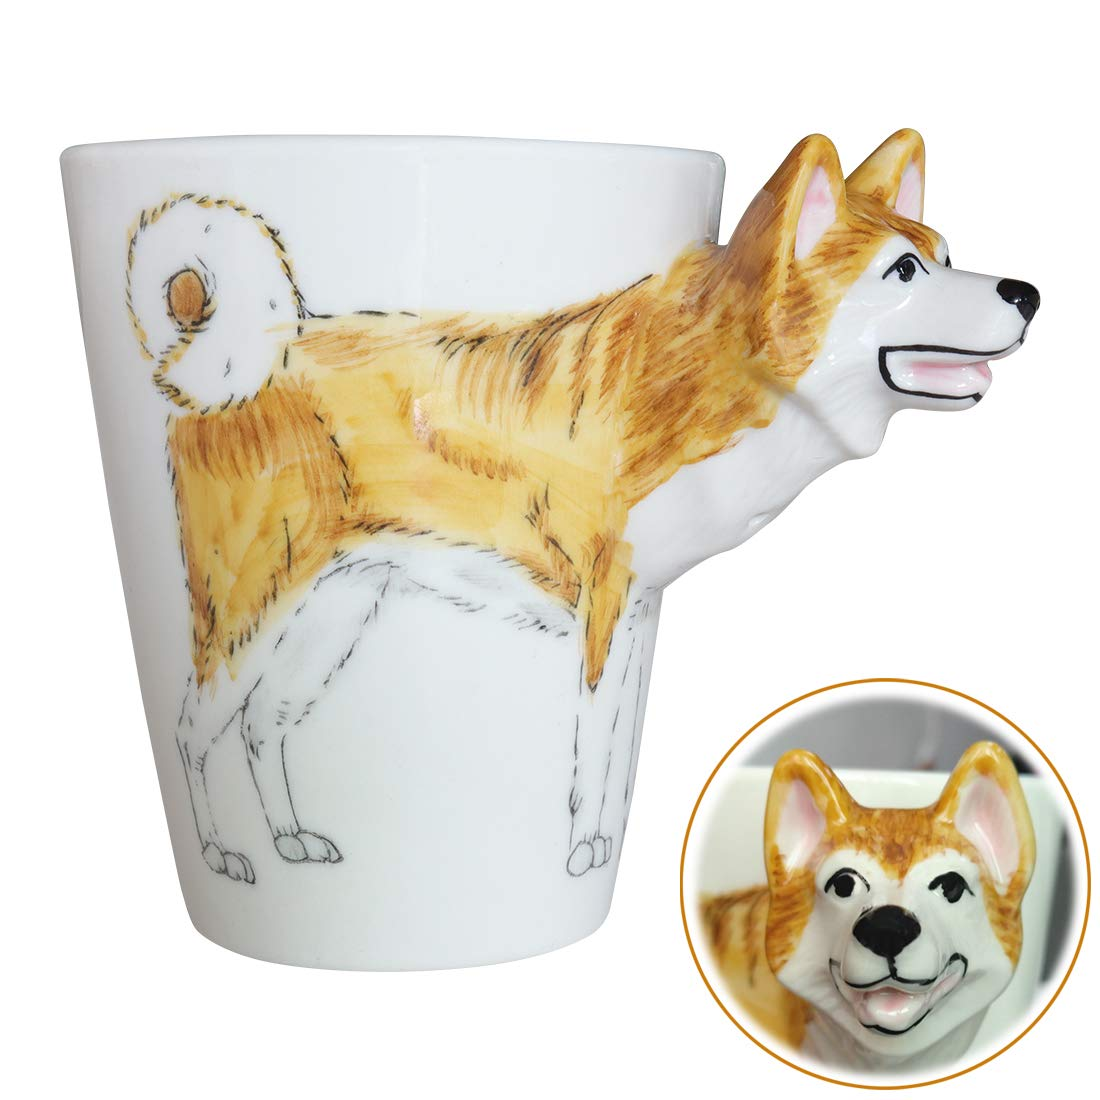 WEY&FLY 3D Coffee Pet Mug, Animals Personalized Tea Cup, Creative Hand Painted 3D Dog Mug, Gift for Lovers Kids Friends…